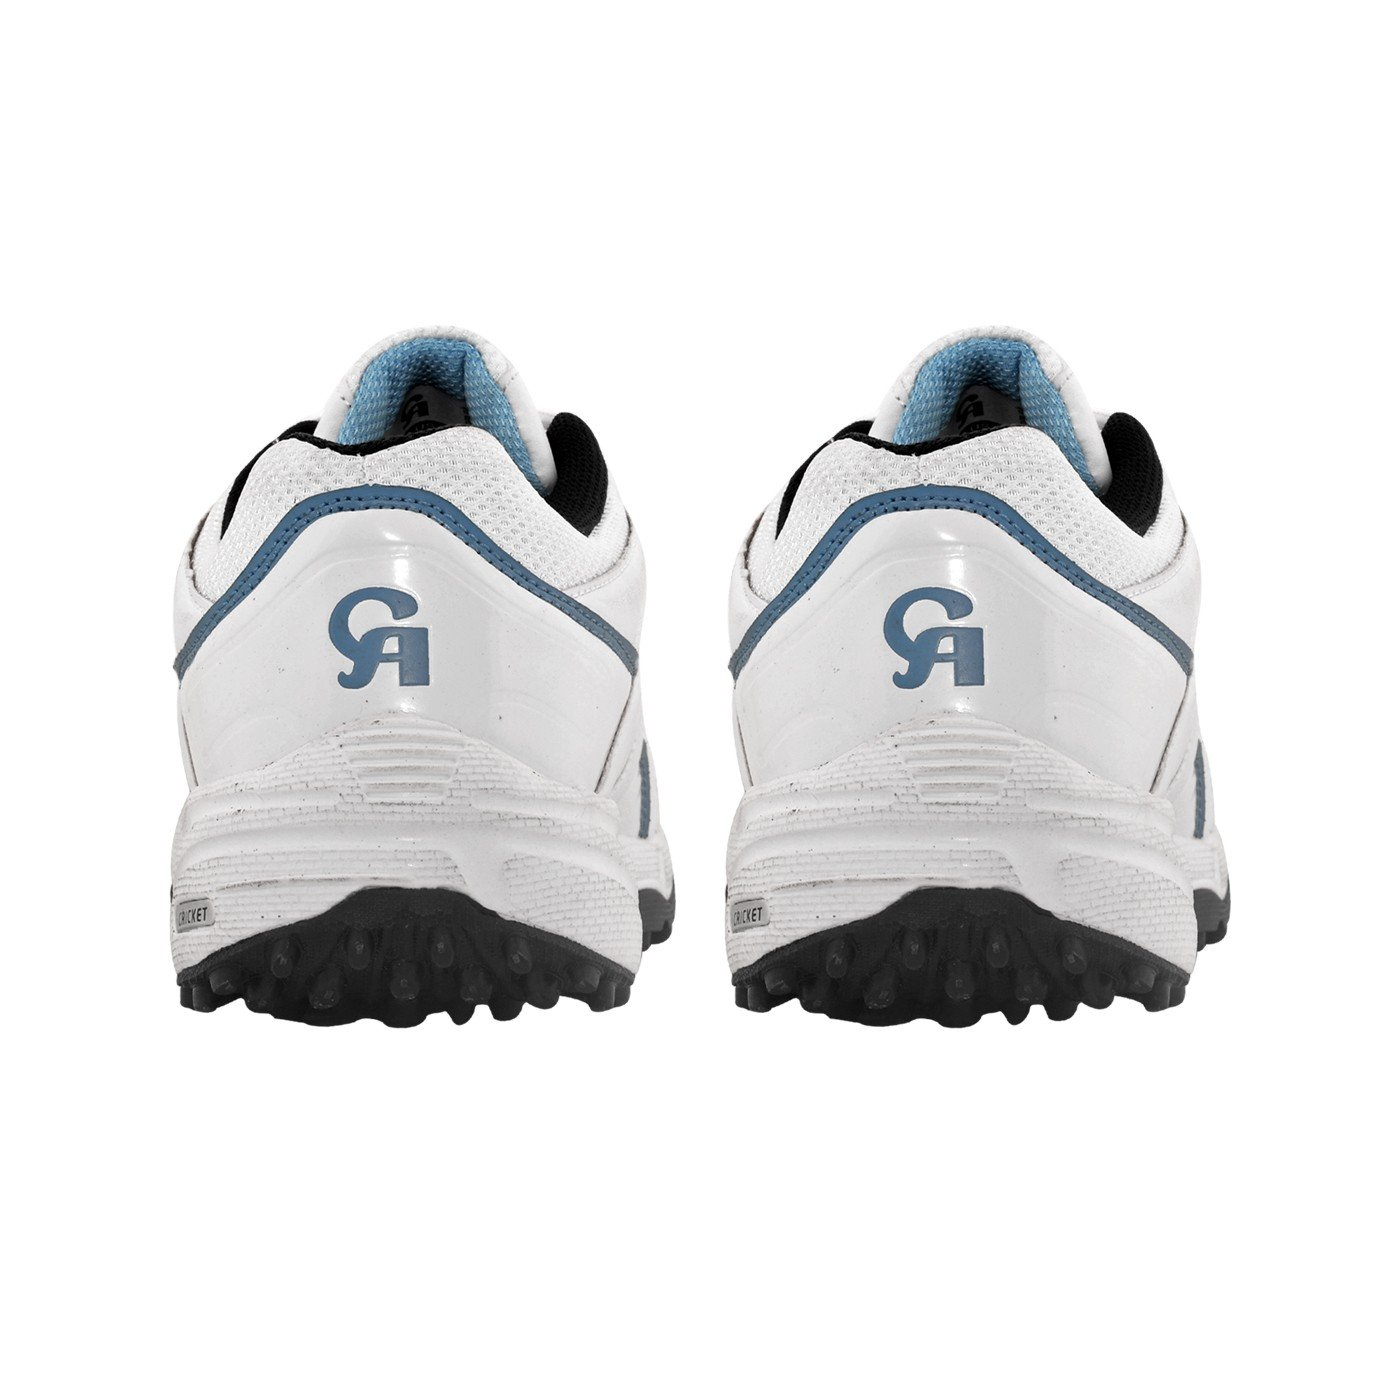 CA Plus 2K Cricket Shoes Made of hydrolyze high PU Available in various sizes and colors